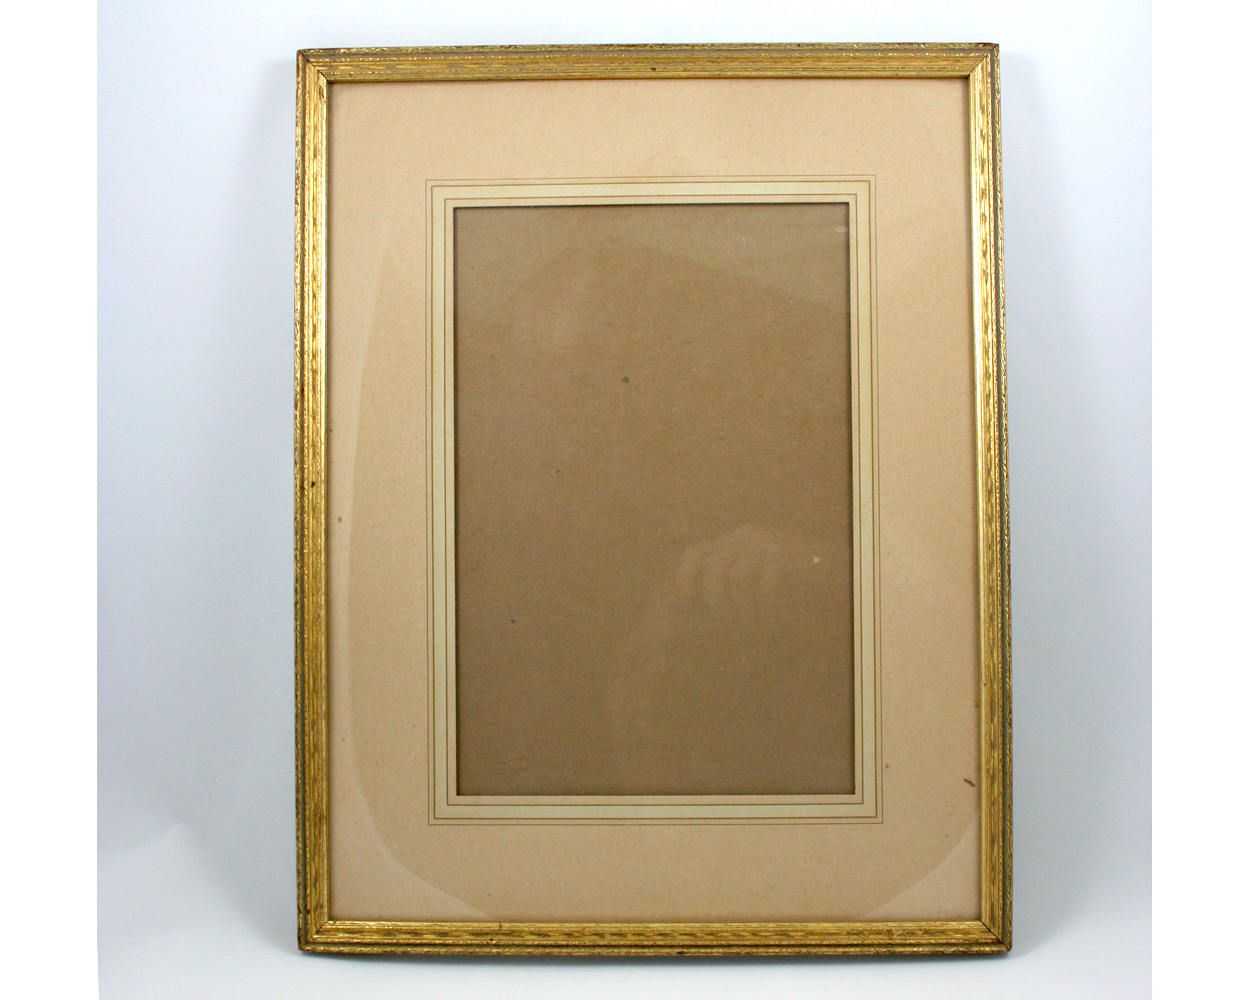 Vintage 1930s Gold Wood Picture Frame 12x15 Portrait Etsy Wood Picture Frames Gold Wood Frames On Wall